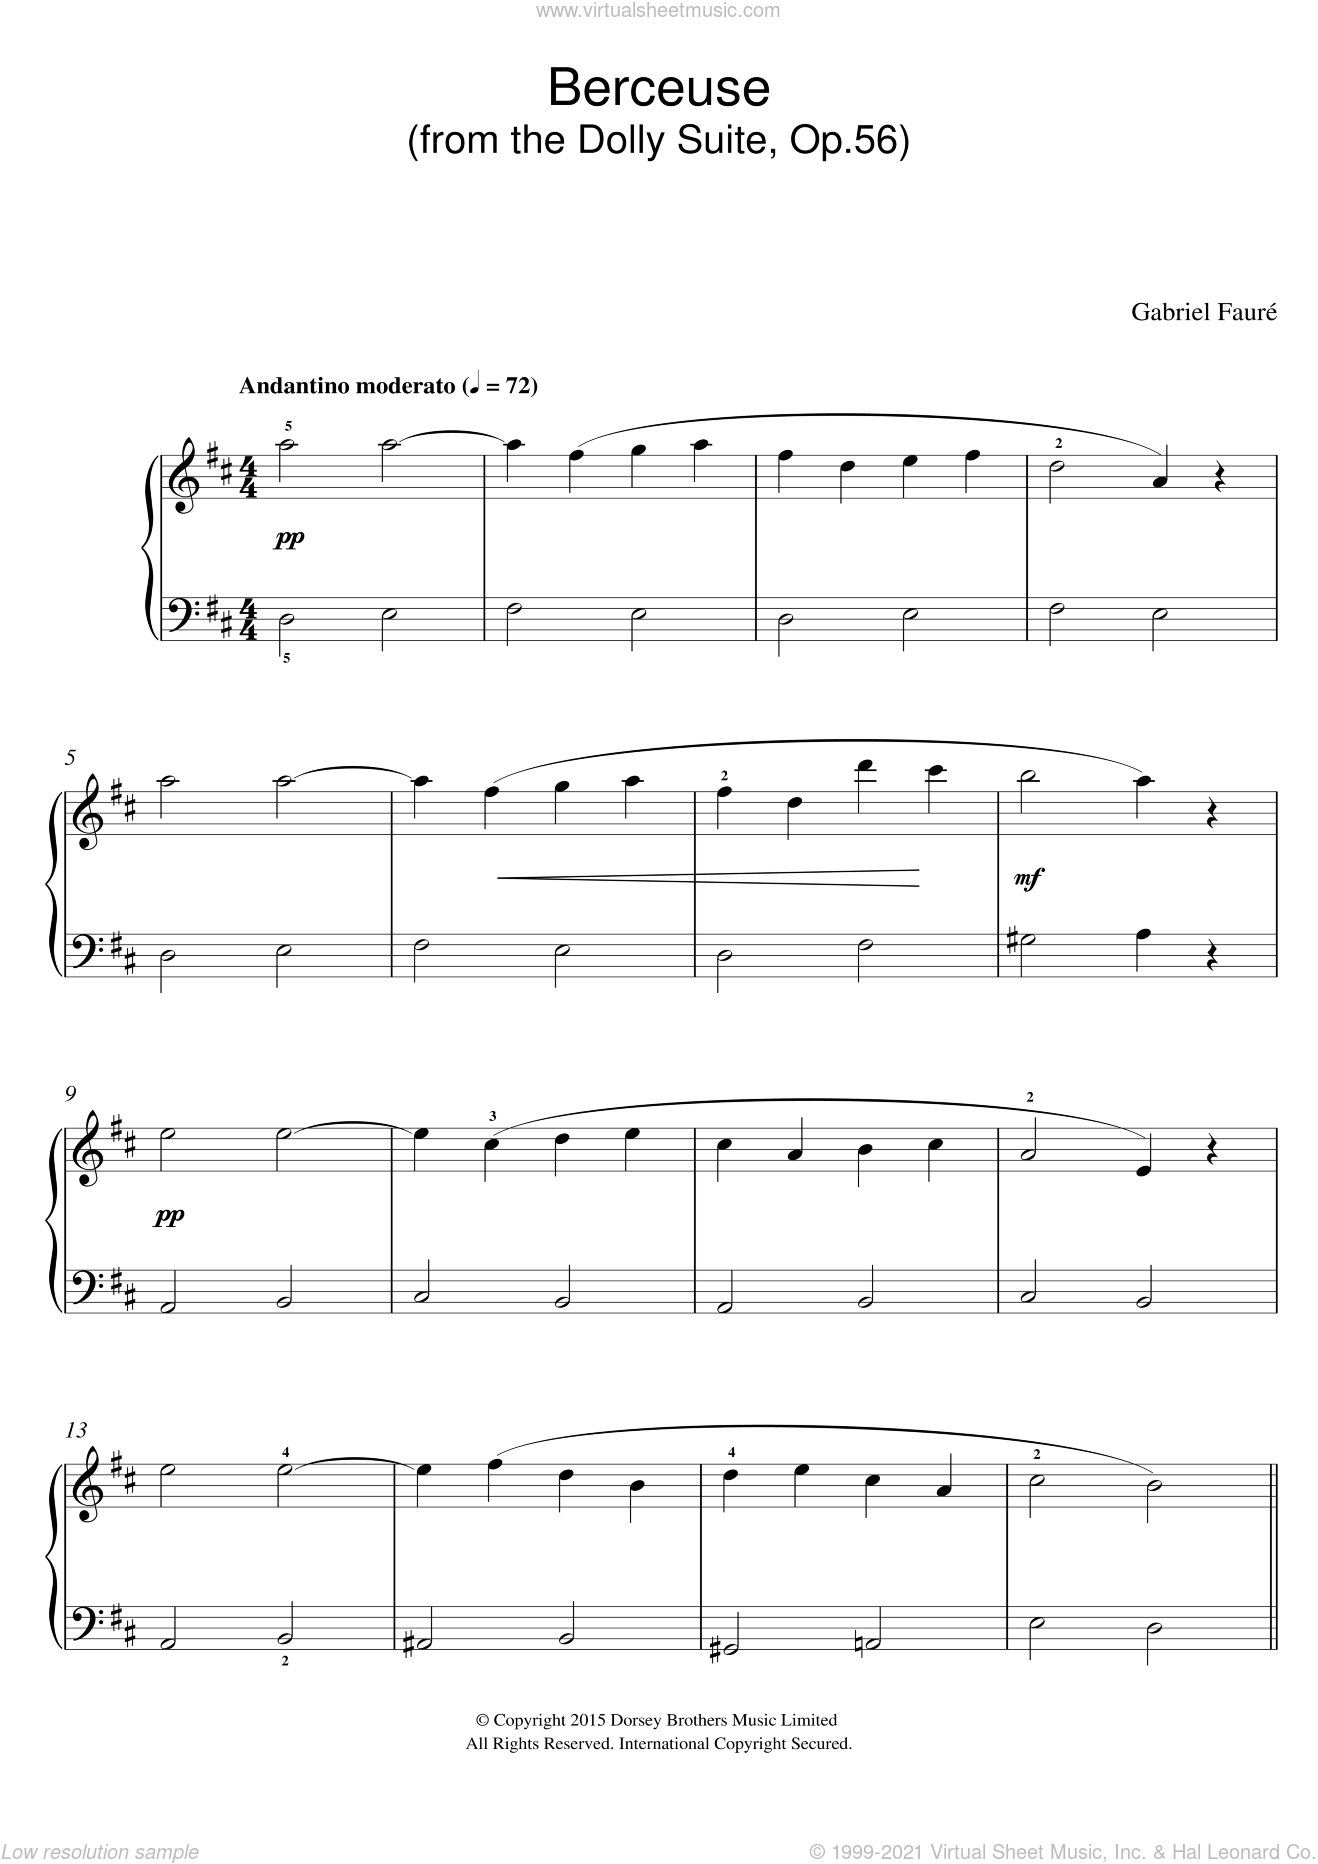 Berceuse (from the Dolly Suite, Op.56) sheet music for voice, piano or guitar by Gabriel Faure, classical score, intermediate skill level